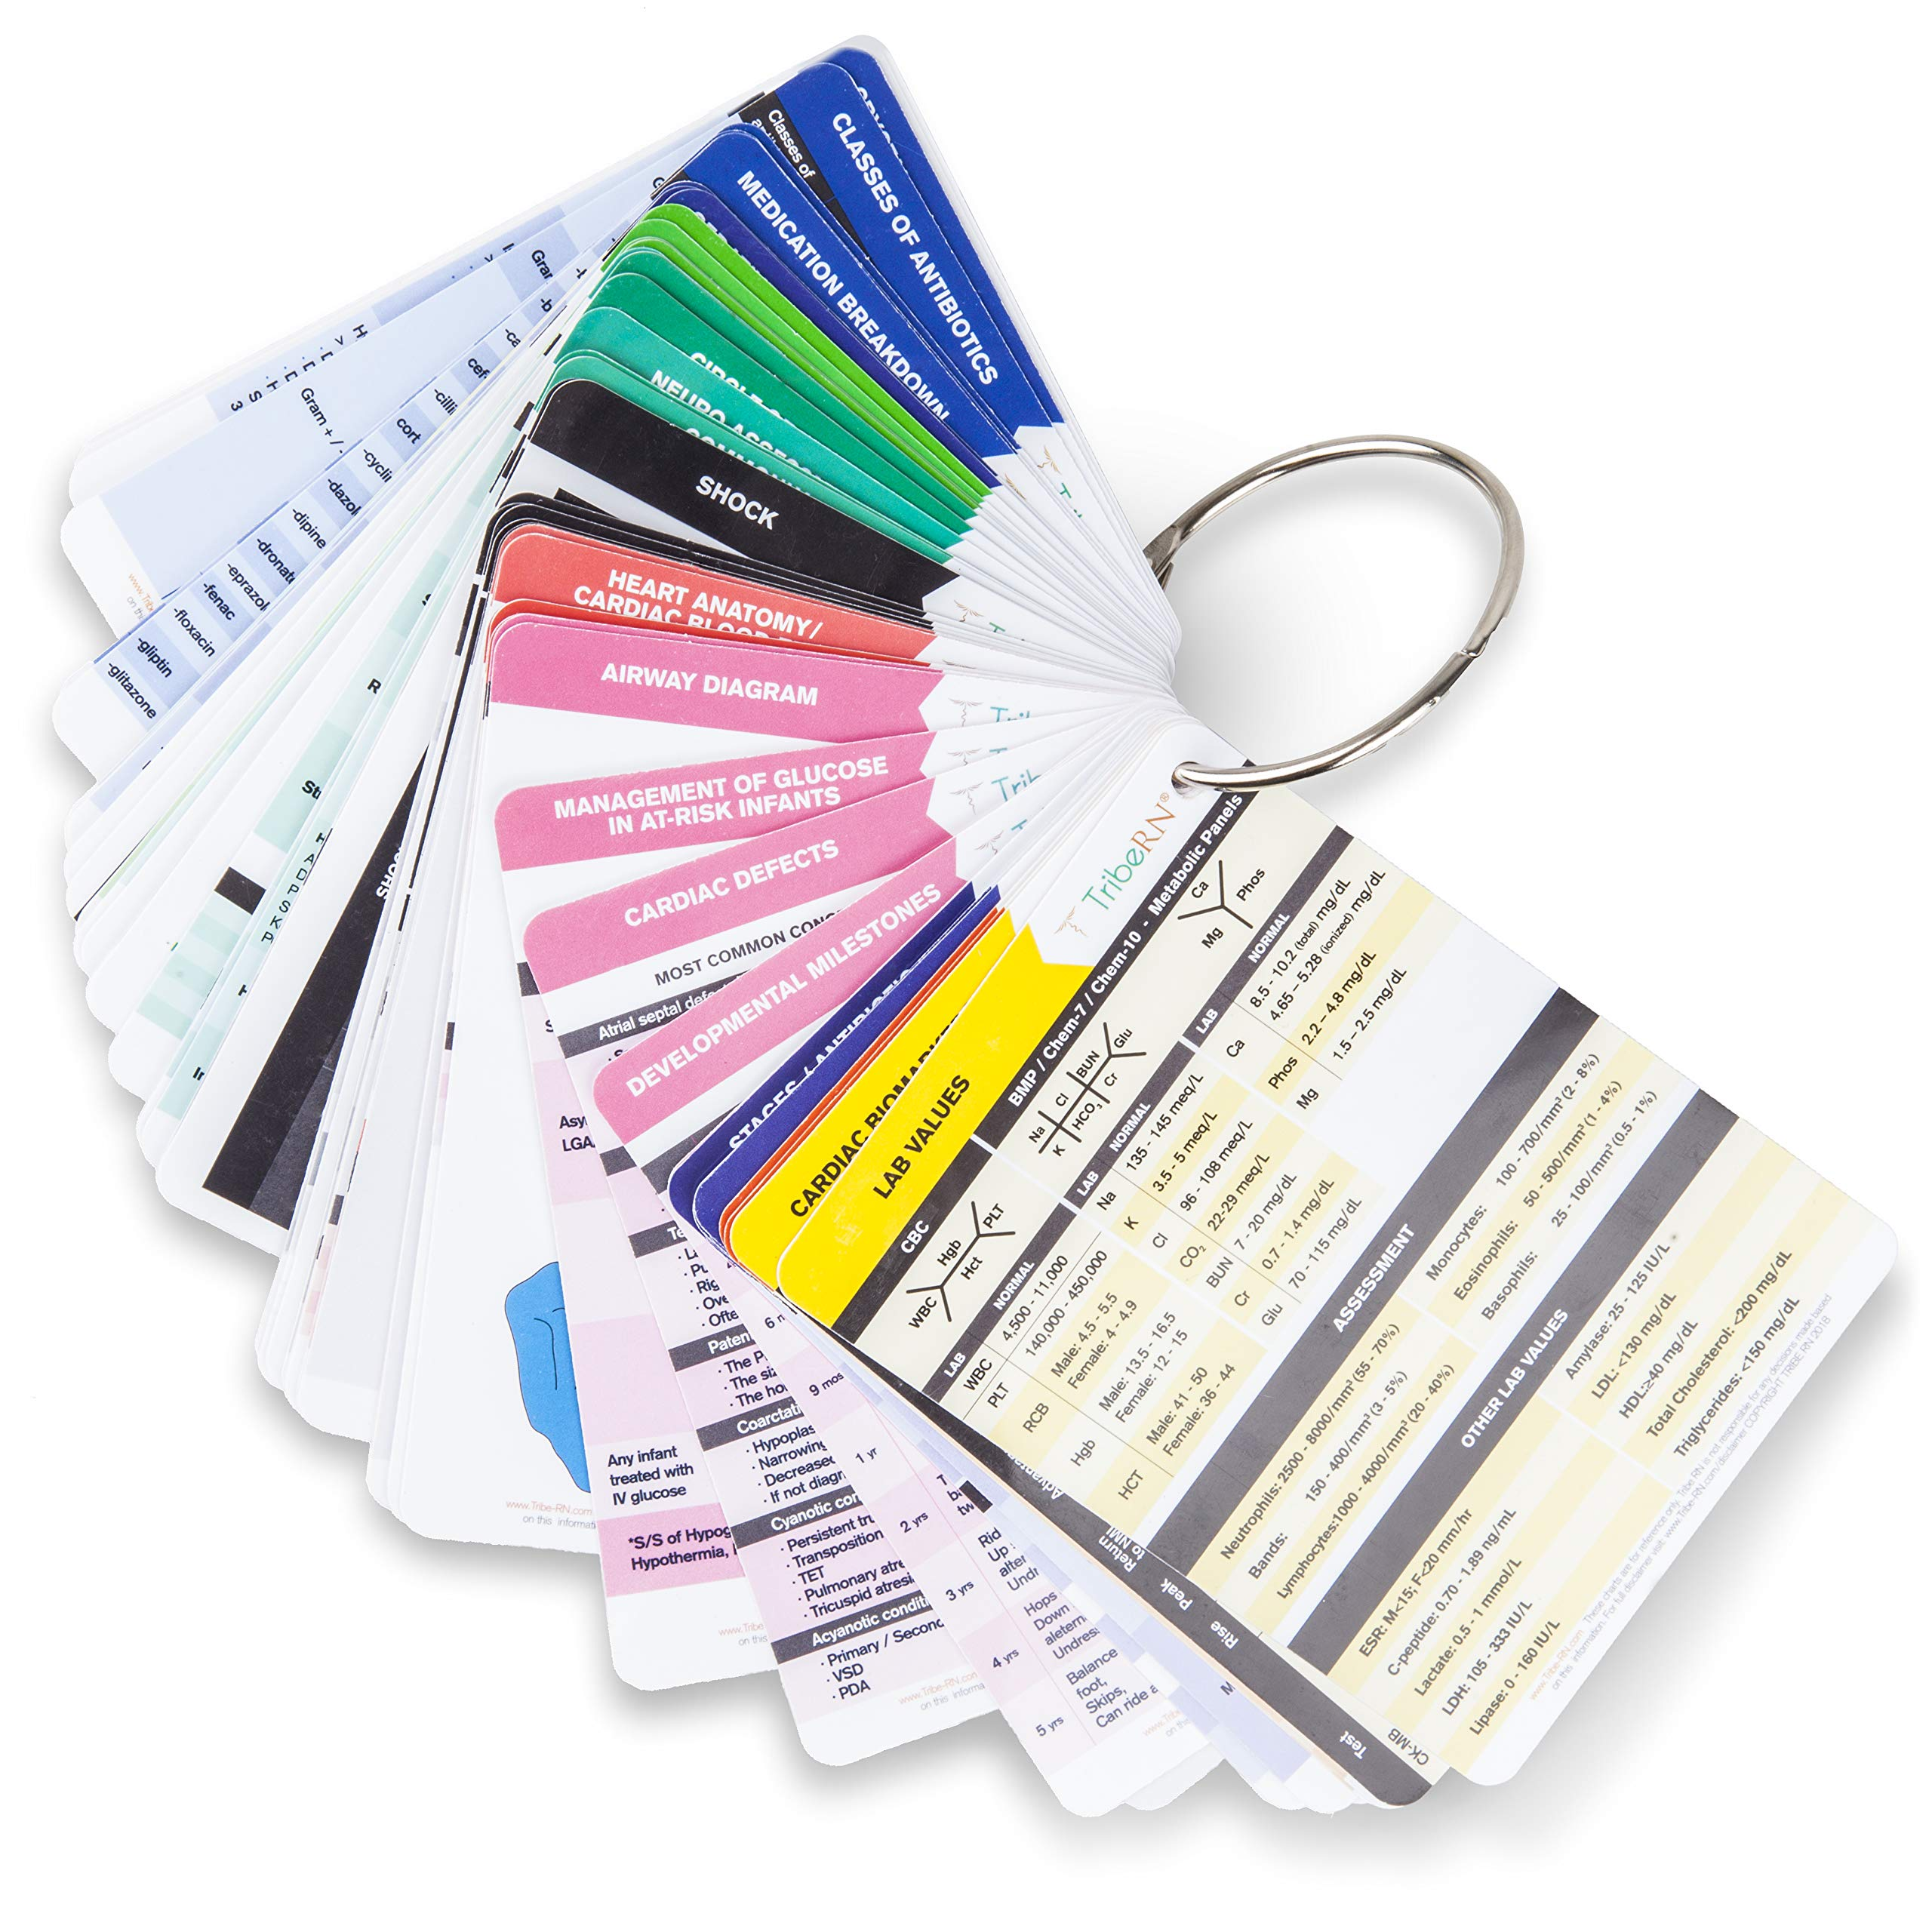 PocketGuru Set by Tribe RN - 85 Pocket Sized Nursing School Reference Cards and Online Clinical Resource Library Essential Gift for Nurses and Nursing Students